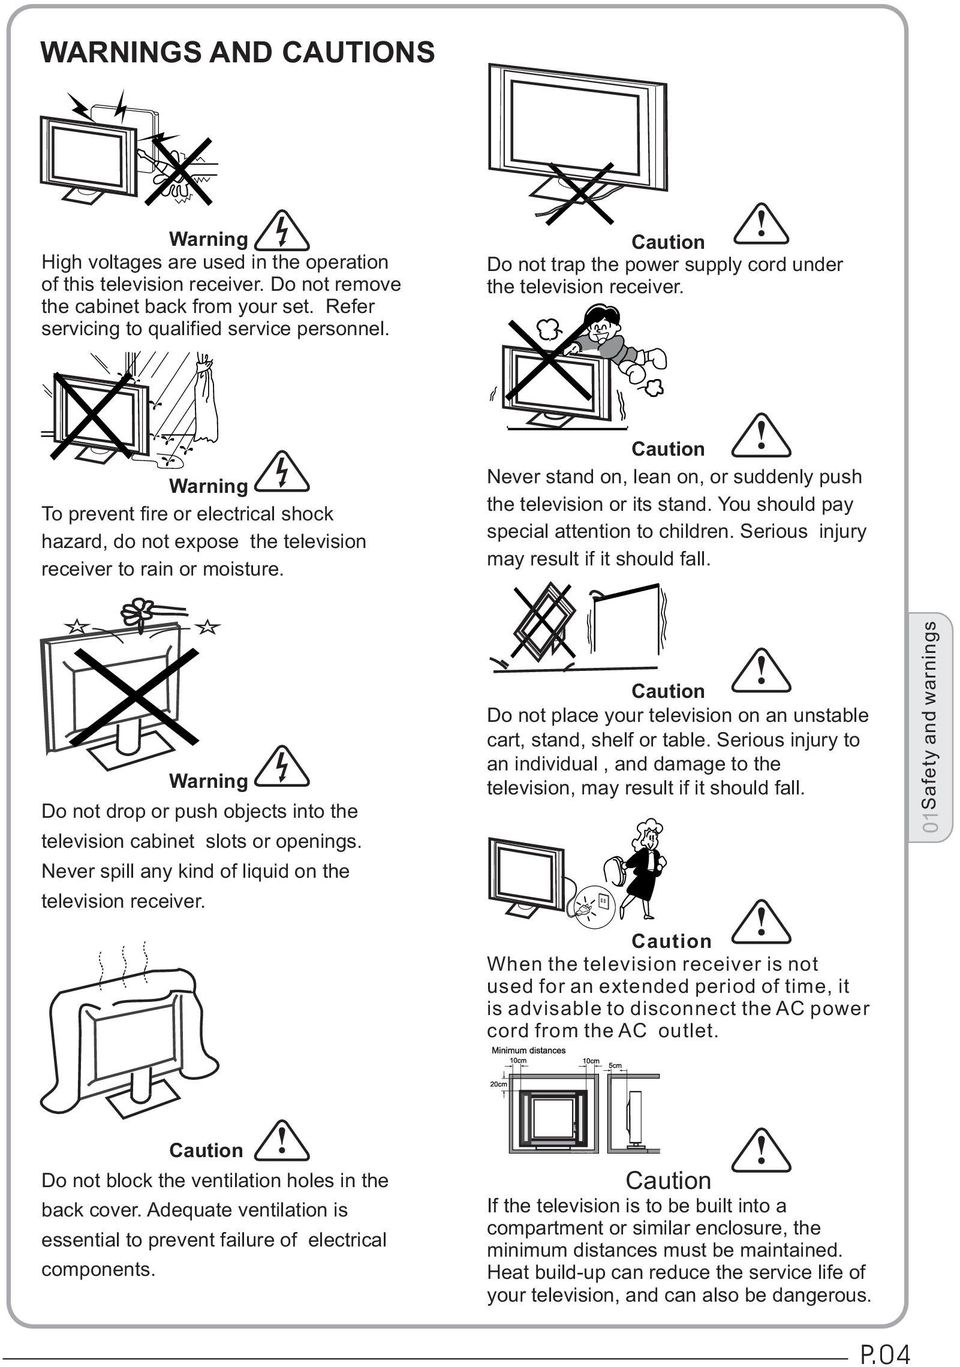 Led Lcd Tv Receiver User Manual Pdf Block Diagram Of Warning To Prevent Fire Or Electrical Shock Hazard Do Not Expose The Television